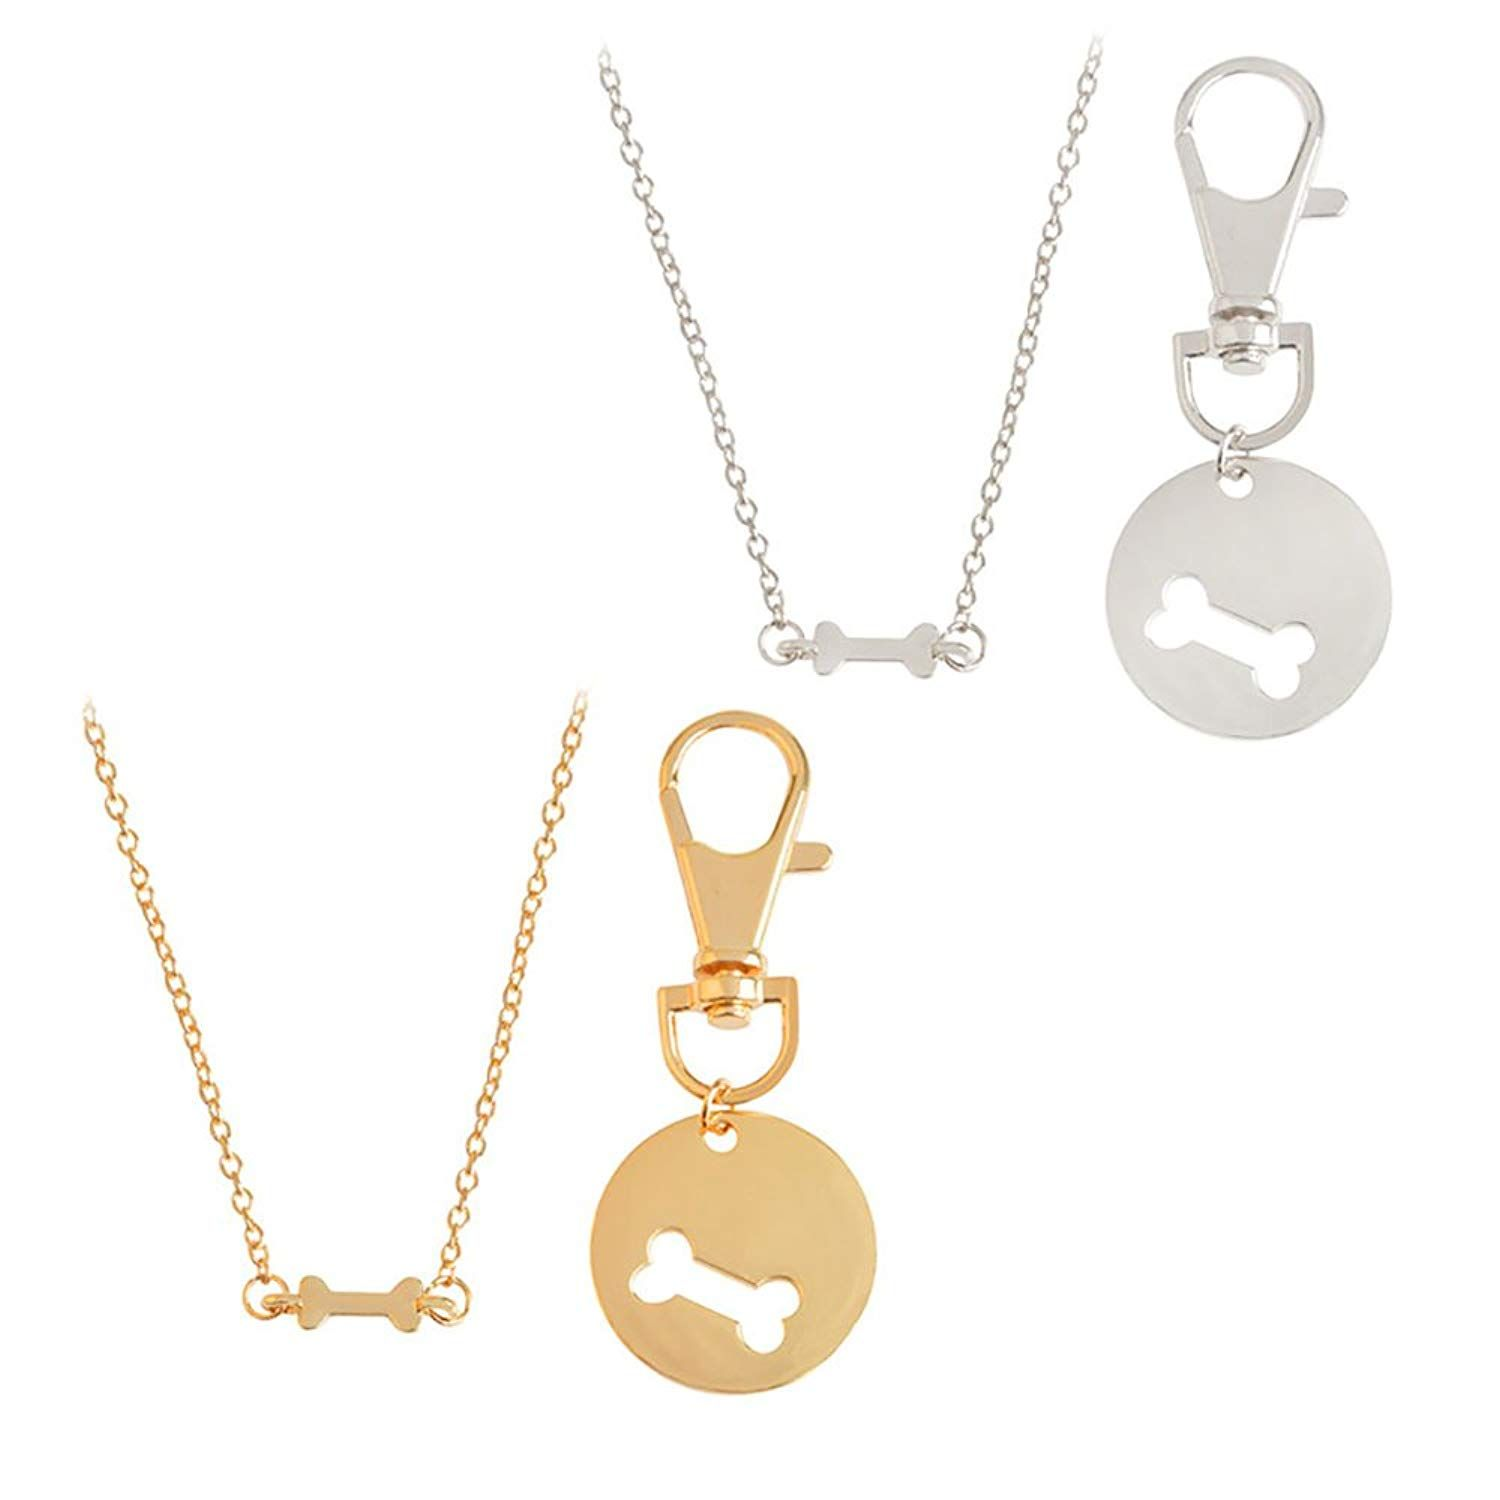 2a58f472c77 Meiligo Fashion 2 Pcs Best Friends Friendship Gold Silver Dog Bone Charm  Tag Necklace Key Chain Owner and Dog Jewelry matching Pet Collar Key chain  Pendant ...